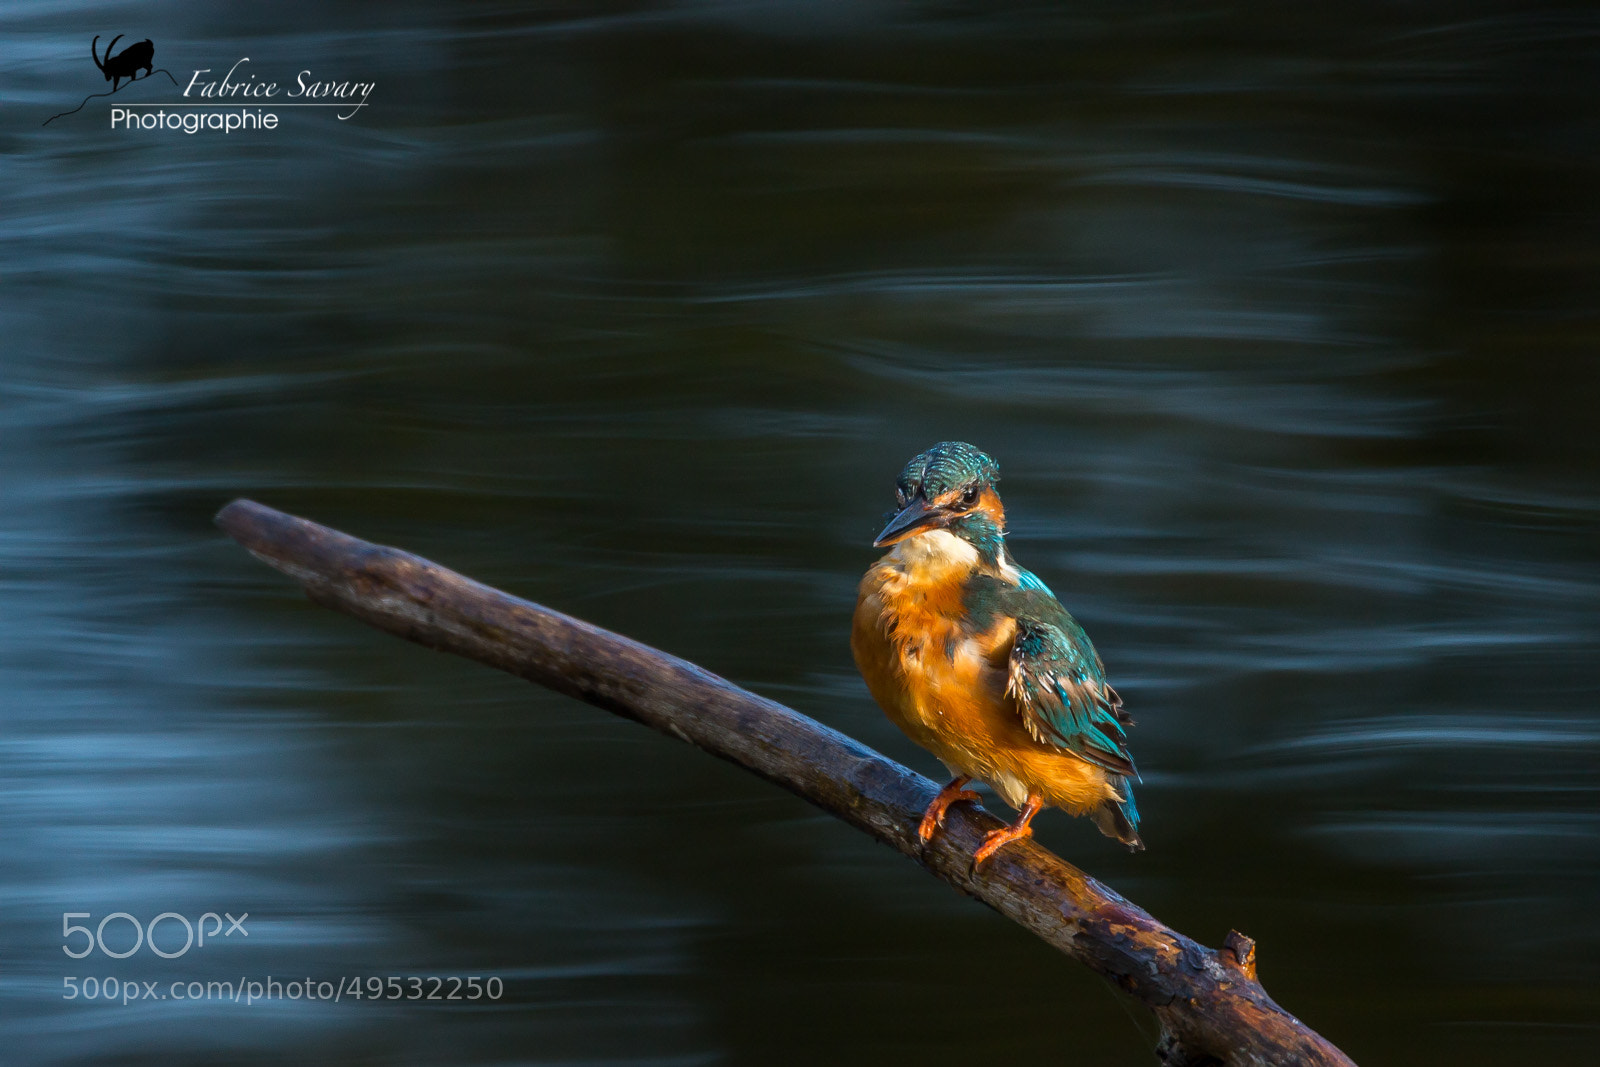 Photograph Kingfisher ou martin pêcheur by Fabrice Savary  on 500px